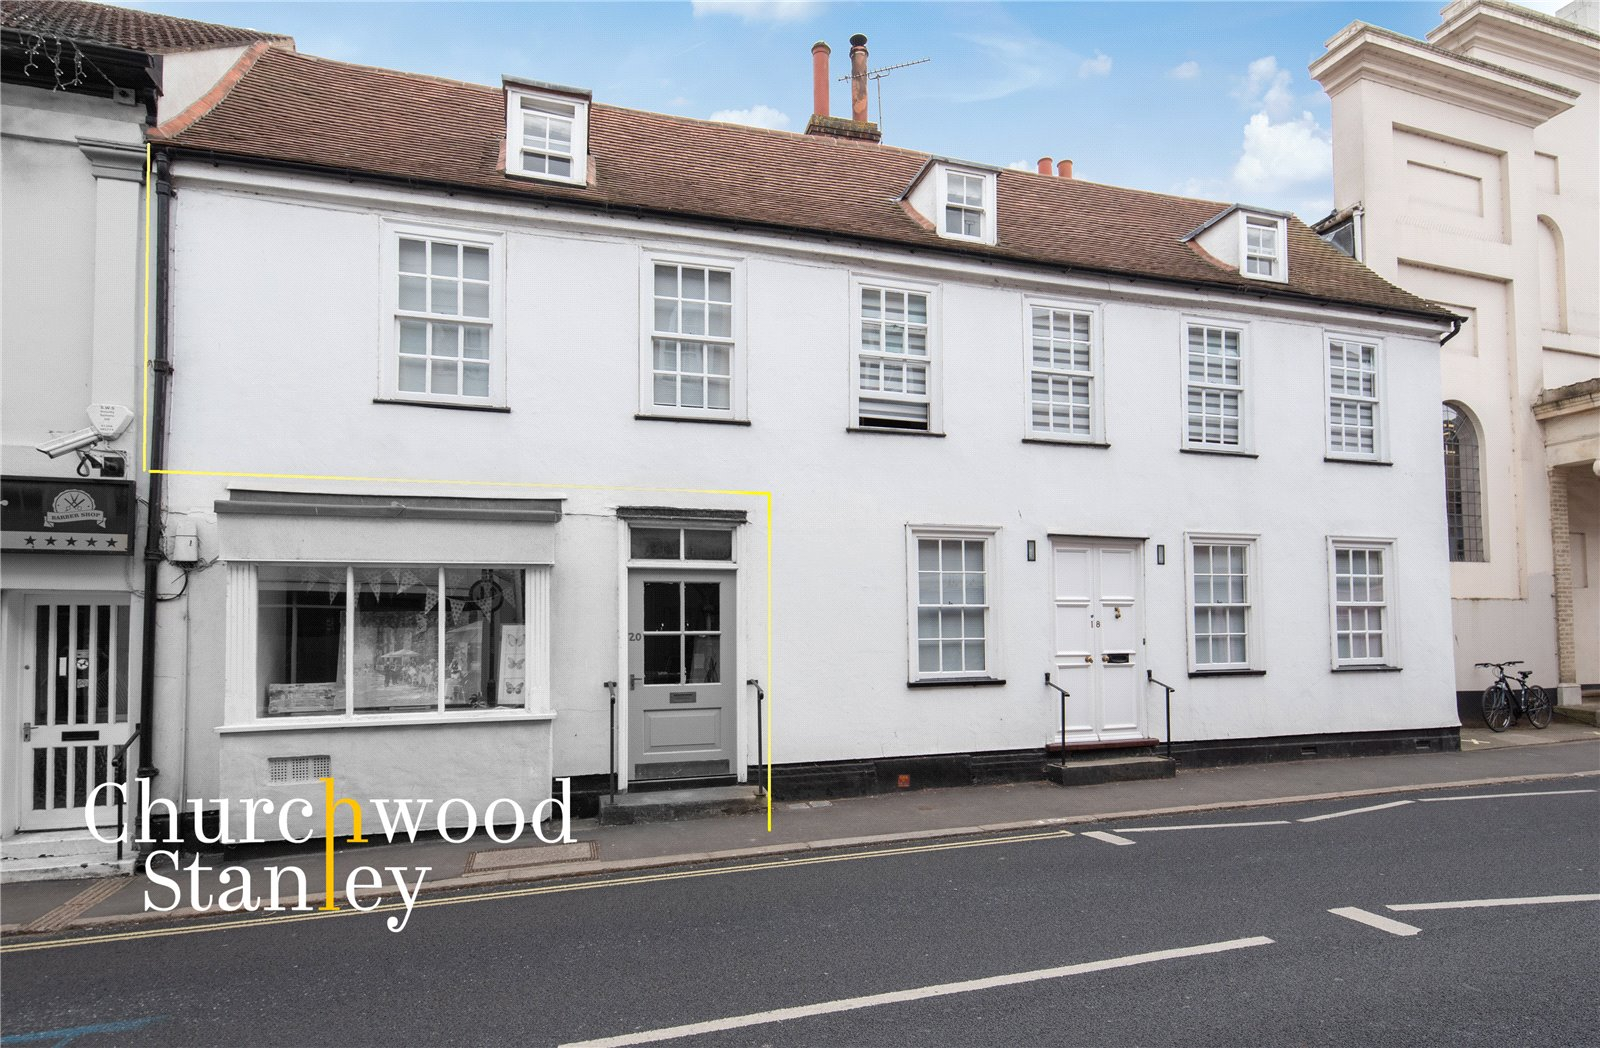 4 bed house for sale in High Street, Manningtree  - Property Image 3